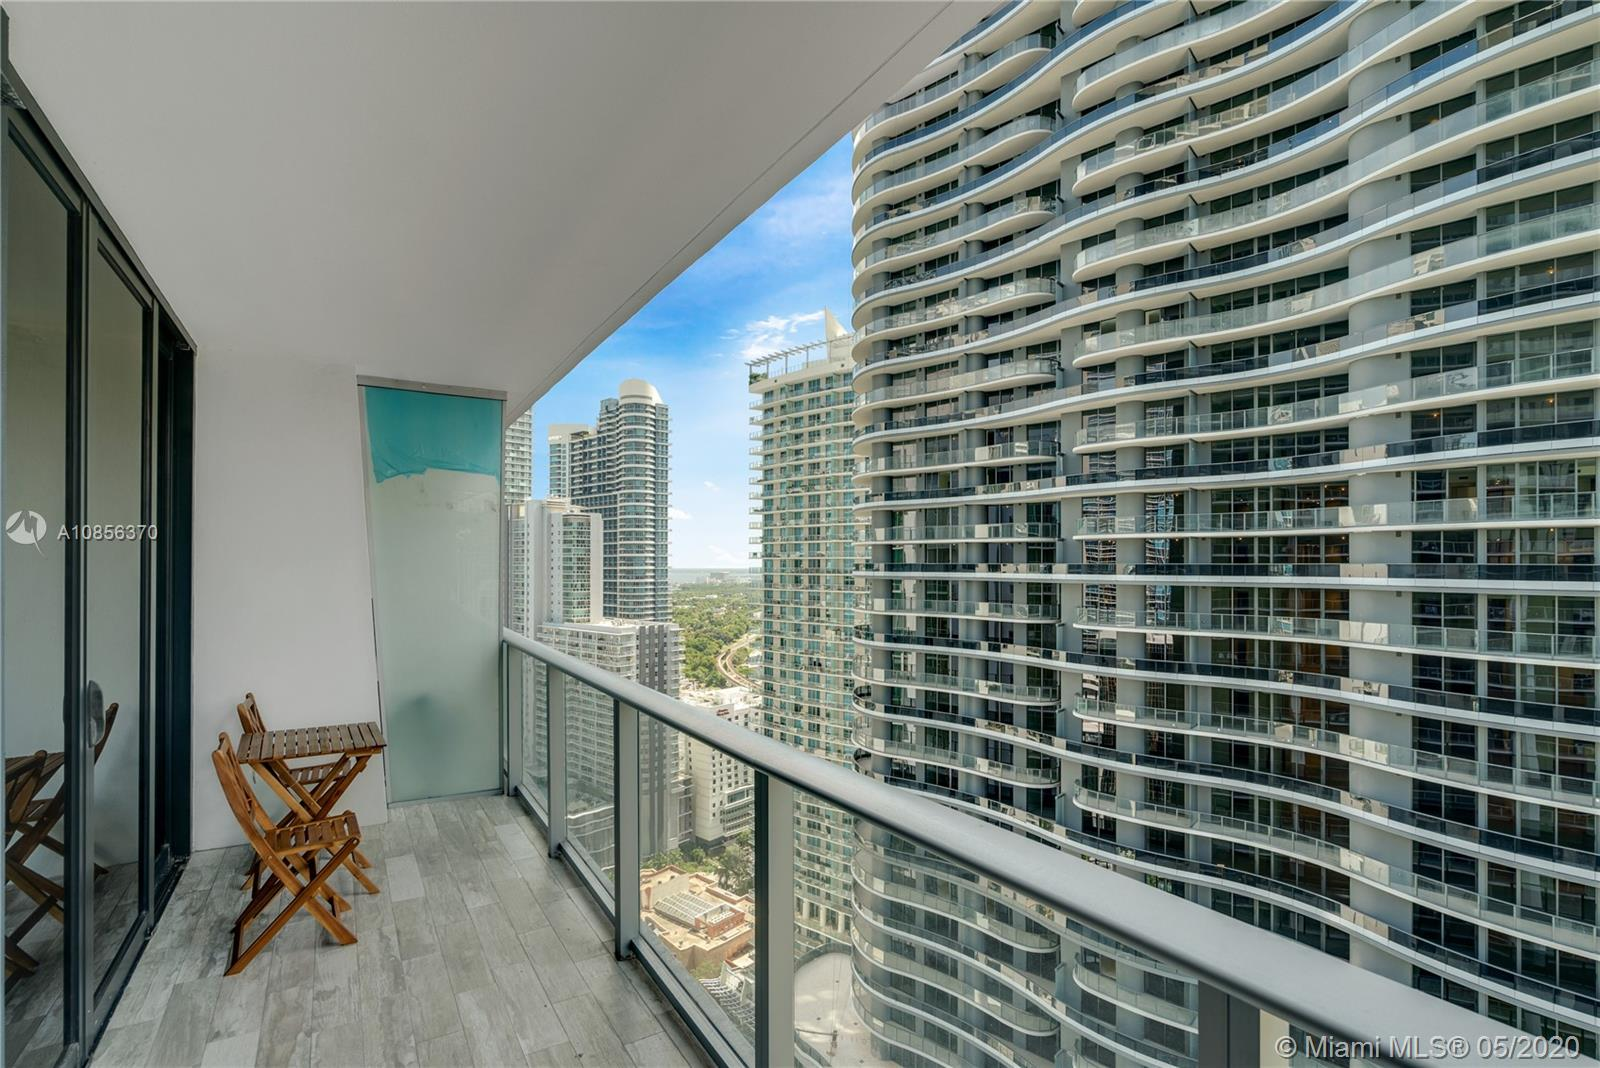 "Modern 1BD/1.5 BA for sale at one of the most captivating buildings in Brickell. Perfect investment property! A unique building with glass façade, stylish décor all throughout the building, basketball court, two story club reserved for the building community, bar, indoor pool on 50th floor, kids activity room, spa, sauna, treatment room, valet parking, 24-hour security and located in the center of Brickell within distance of everything! Walking distance from Brickell City Centre and shops. The unit is turnkey with brand new large porcelain tiles all throughout, open floor plan with a spacious living room great for entertaining guests, and a private balcony! ""Interior pictures coming soon"" the unit is currently RENTED until March 2020 for $2,650/month."